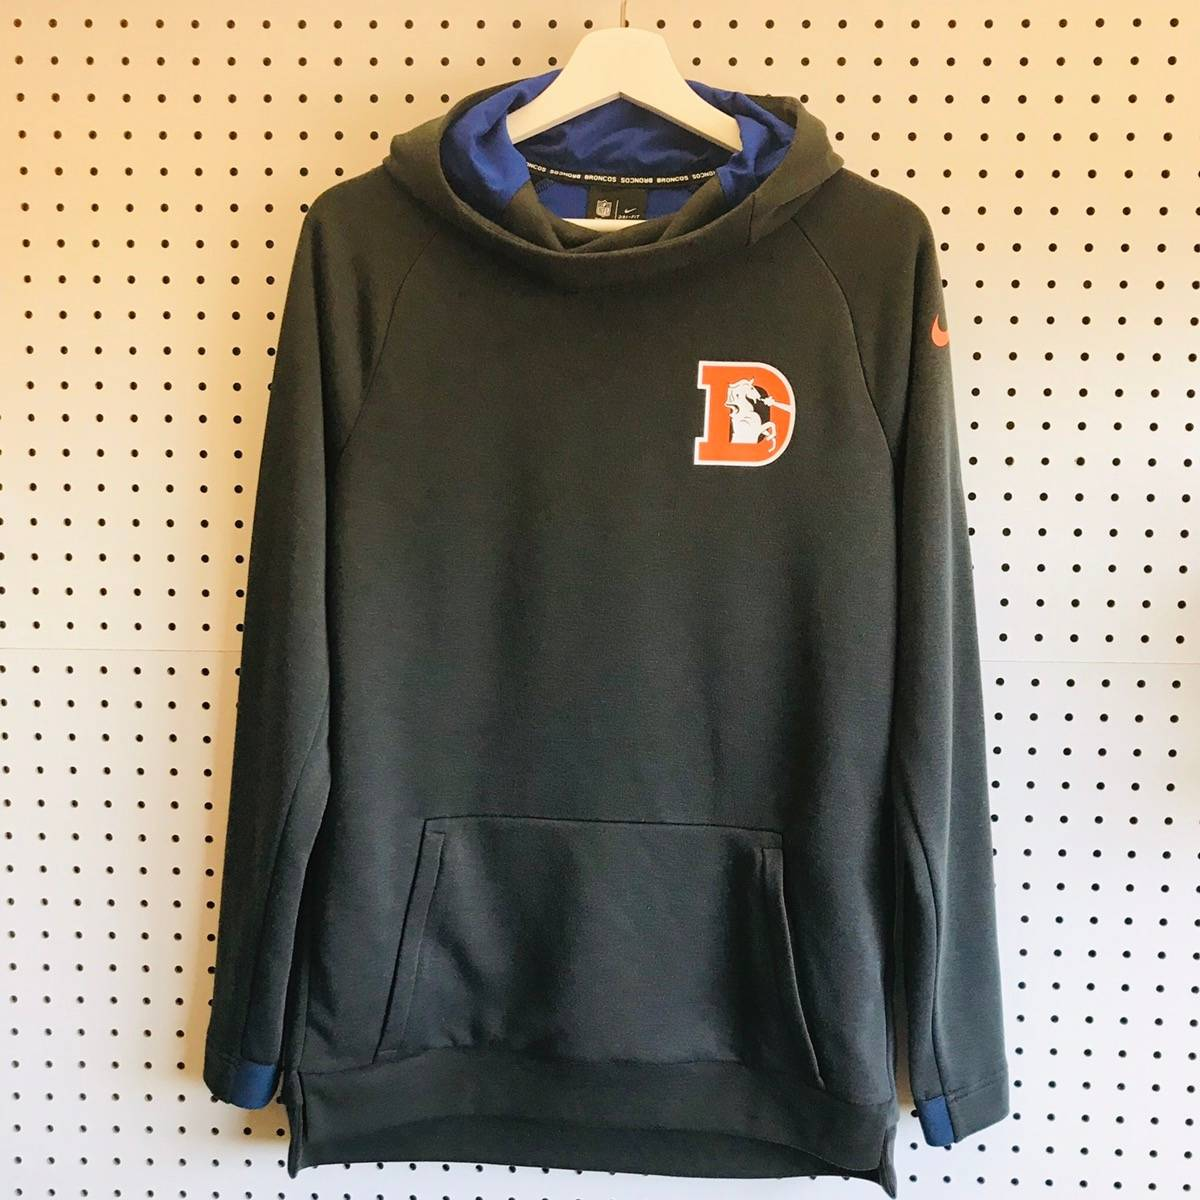 newest collection 02c00 0f4cf Nfl × Nike Broncos Retro Hoodie Nfl Team Apparel X Nike Dri Fit Size S $32